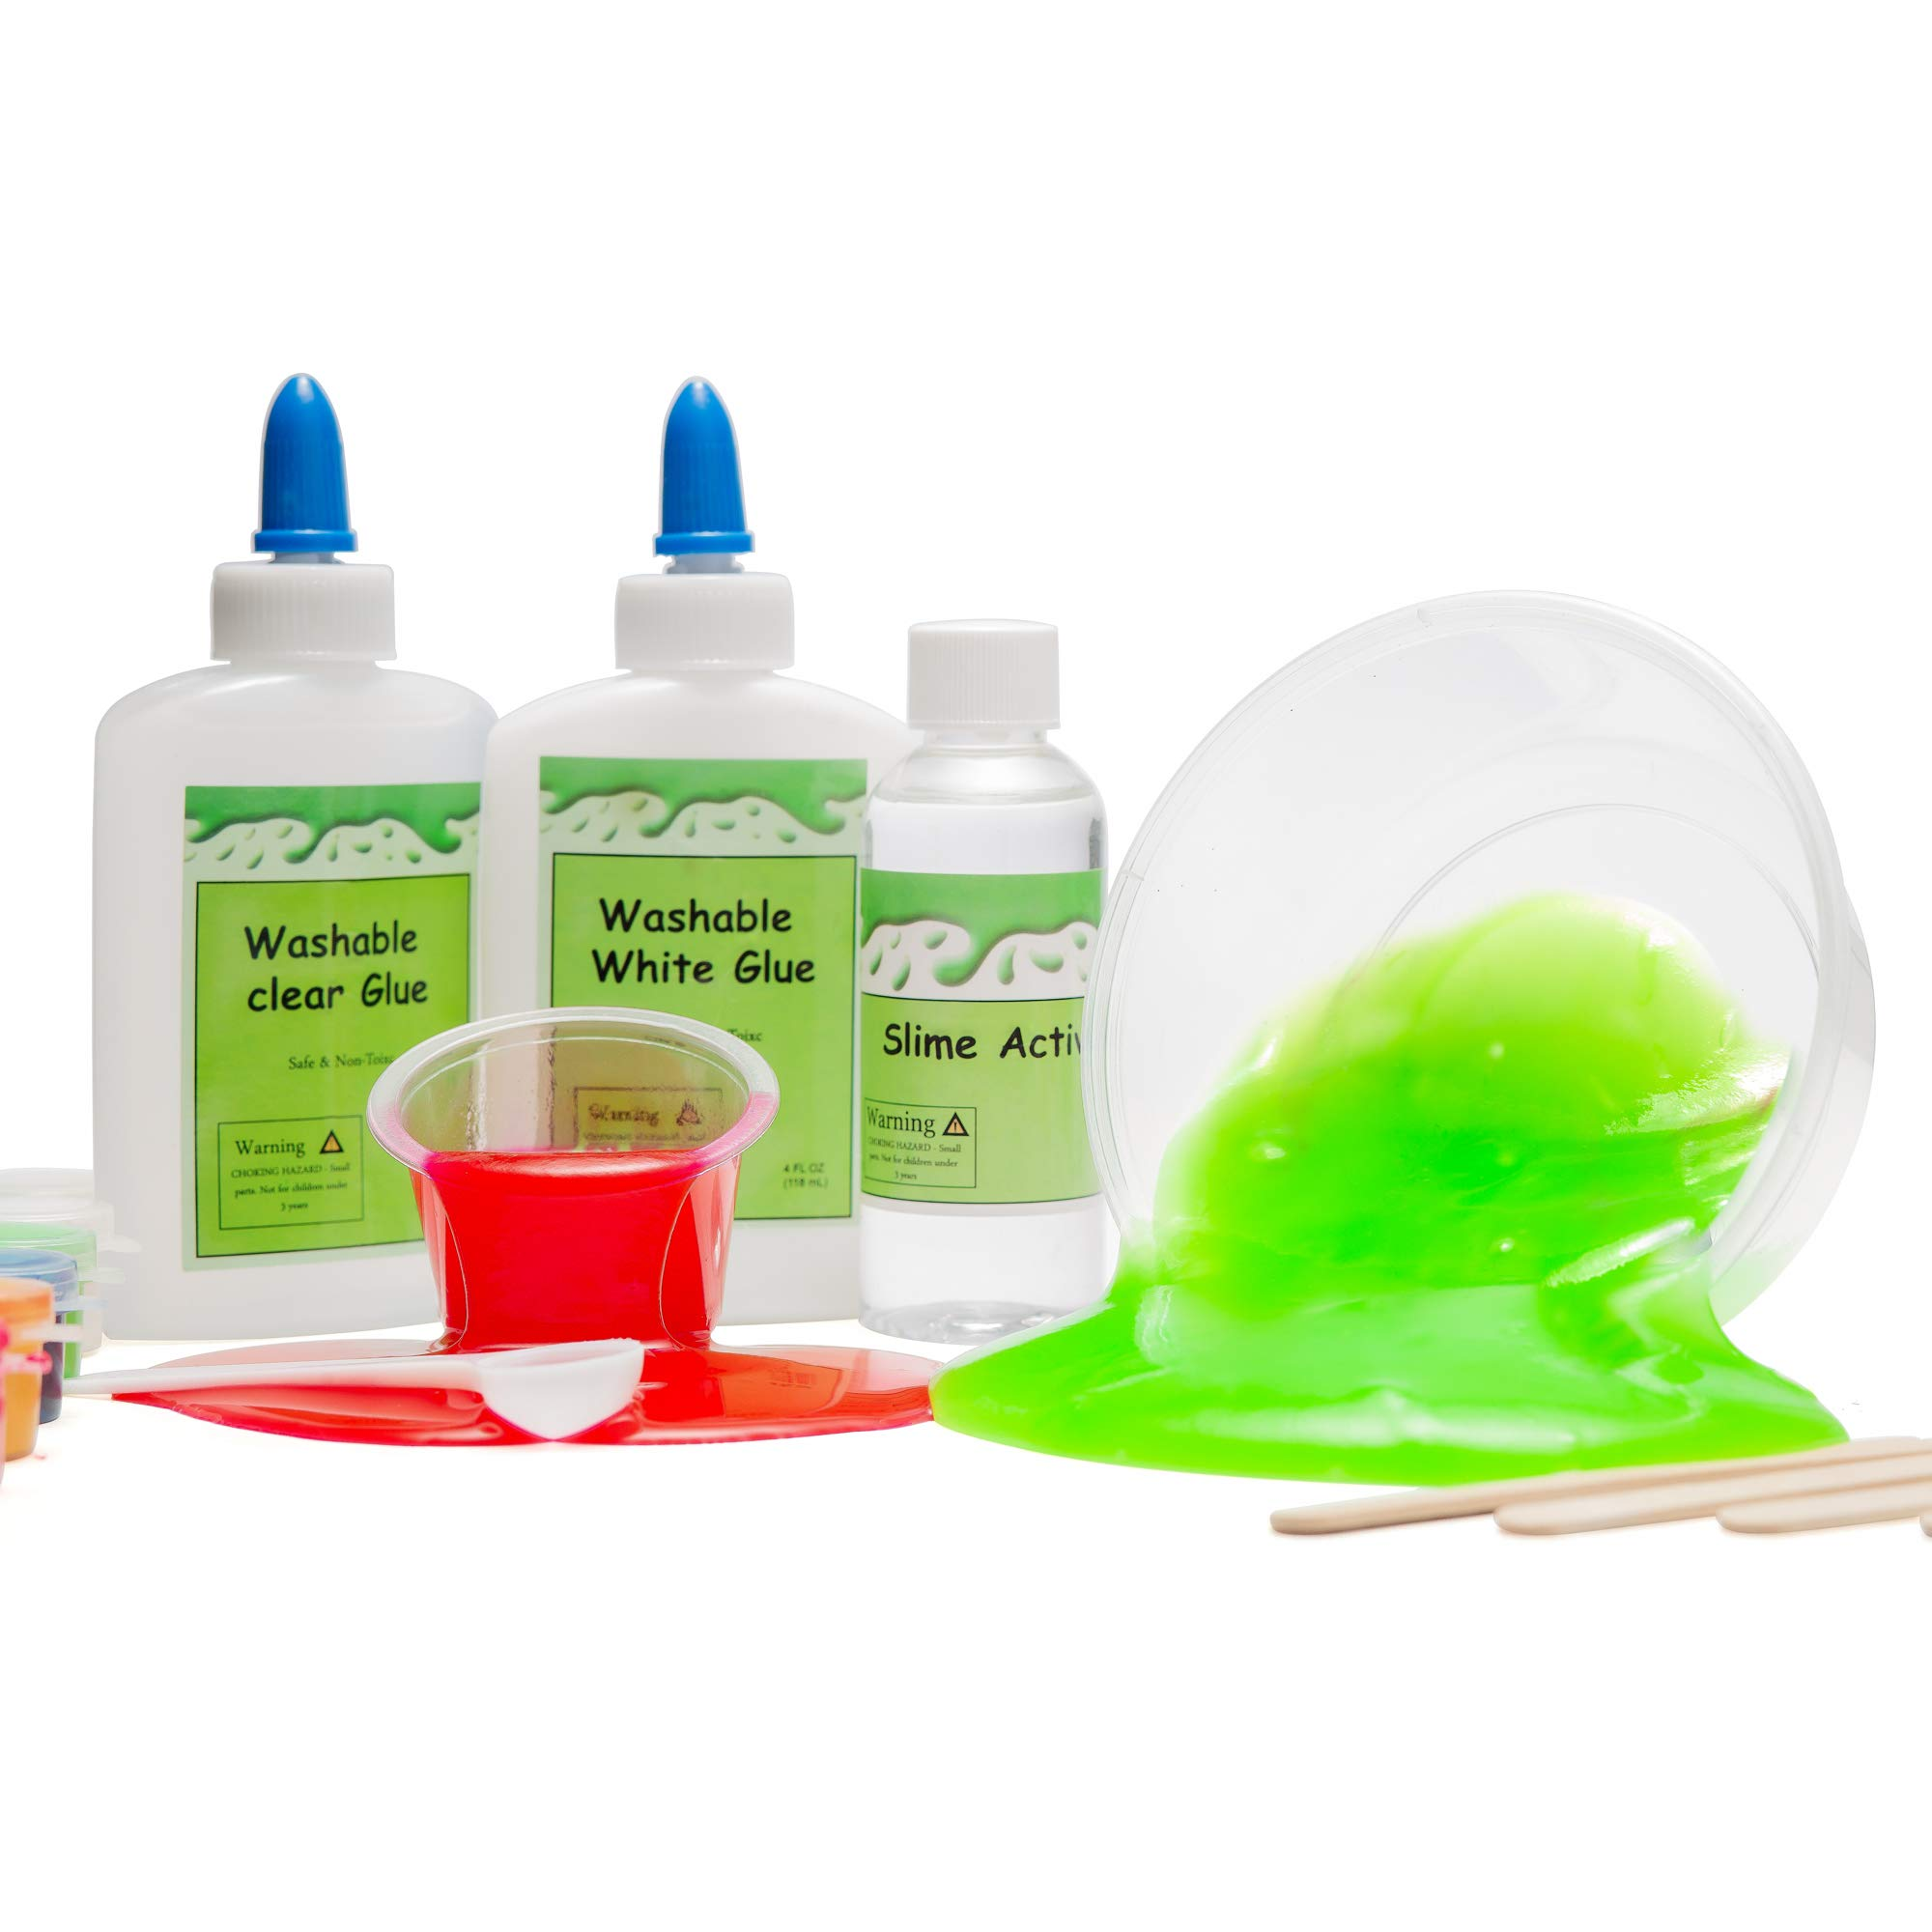 DIY Slime Kit -Learn how to make slime! Make Glow-In-The Dark, Clear, Neon and Glitter Slime - Perfect Gifting Option! Comes With Easy To Make Recipes! Super Slime Making Kit for Boys & Girls! by InStyleCraft (Image #6)